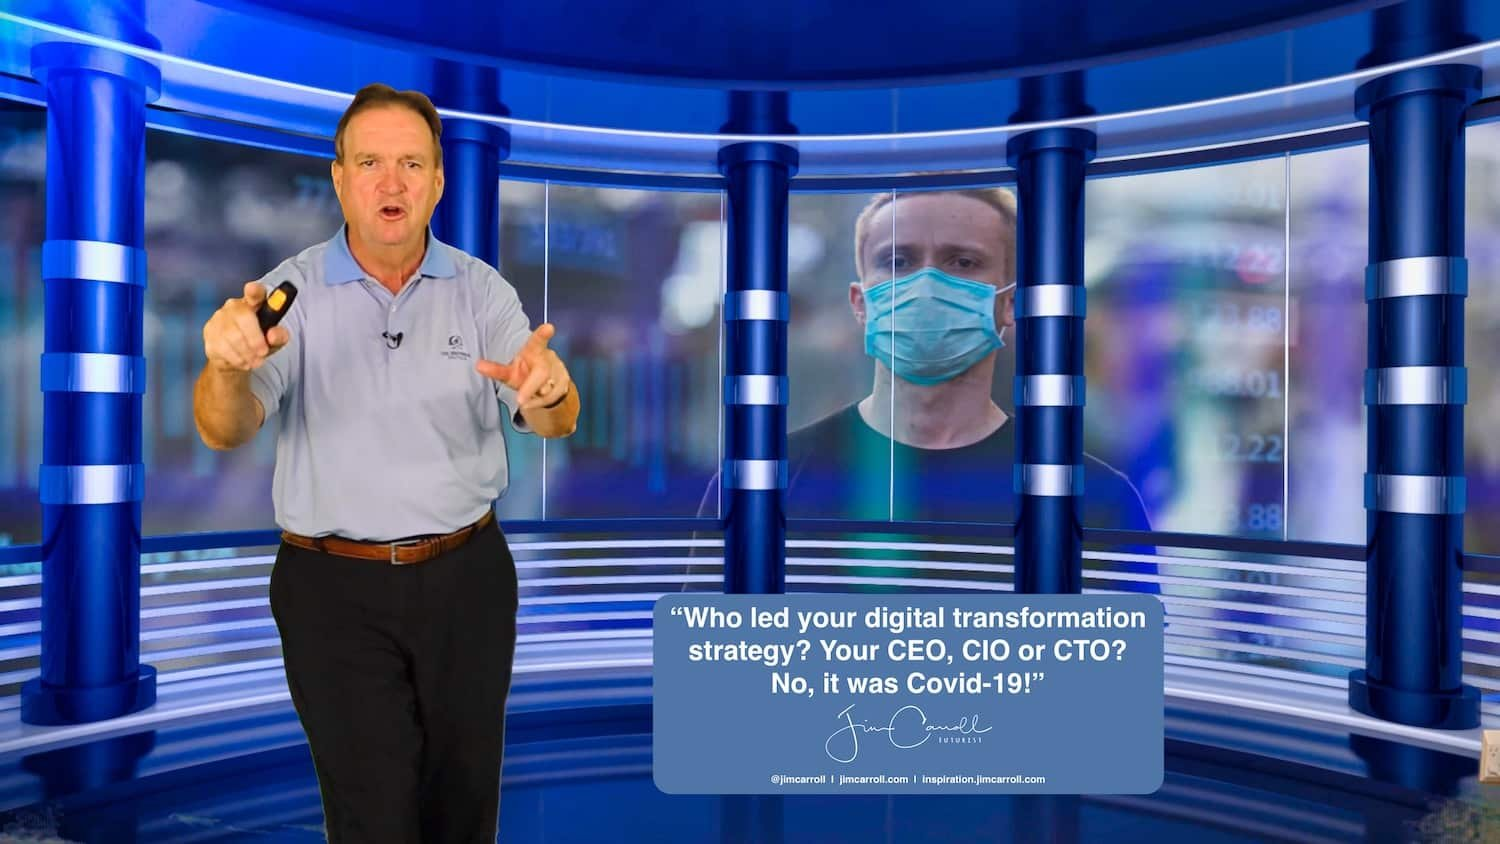 """Daily Inspiration: """"Who led your digital transformation strategy? Your CEO, CIO or CTO? No, it was Covid-19!"""""""